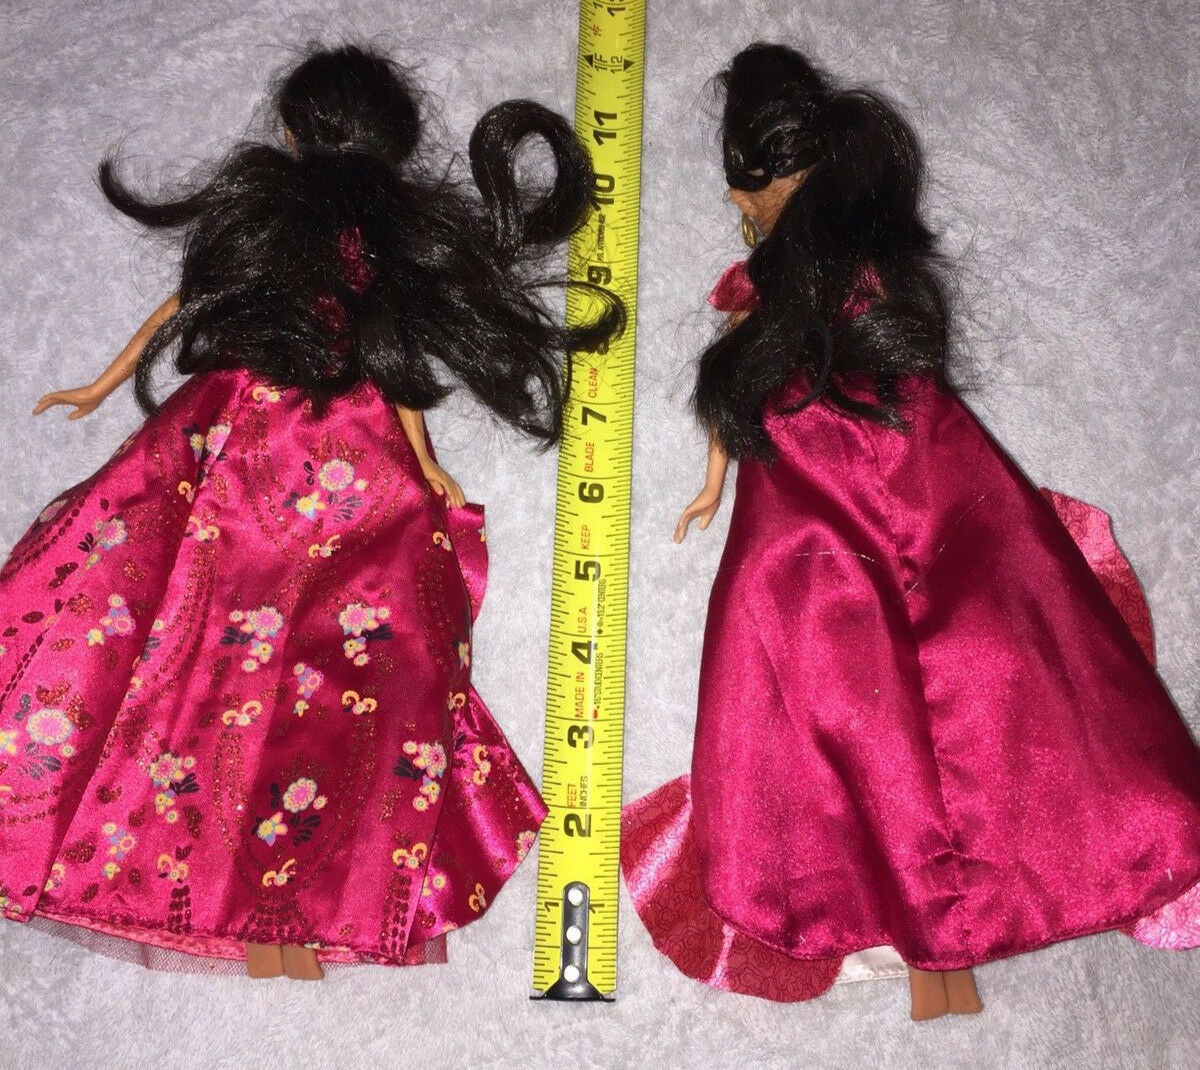 2 Versions Hasbro Disney Princess Avalor Elena Dolls Dressed Used Good Condition